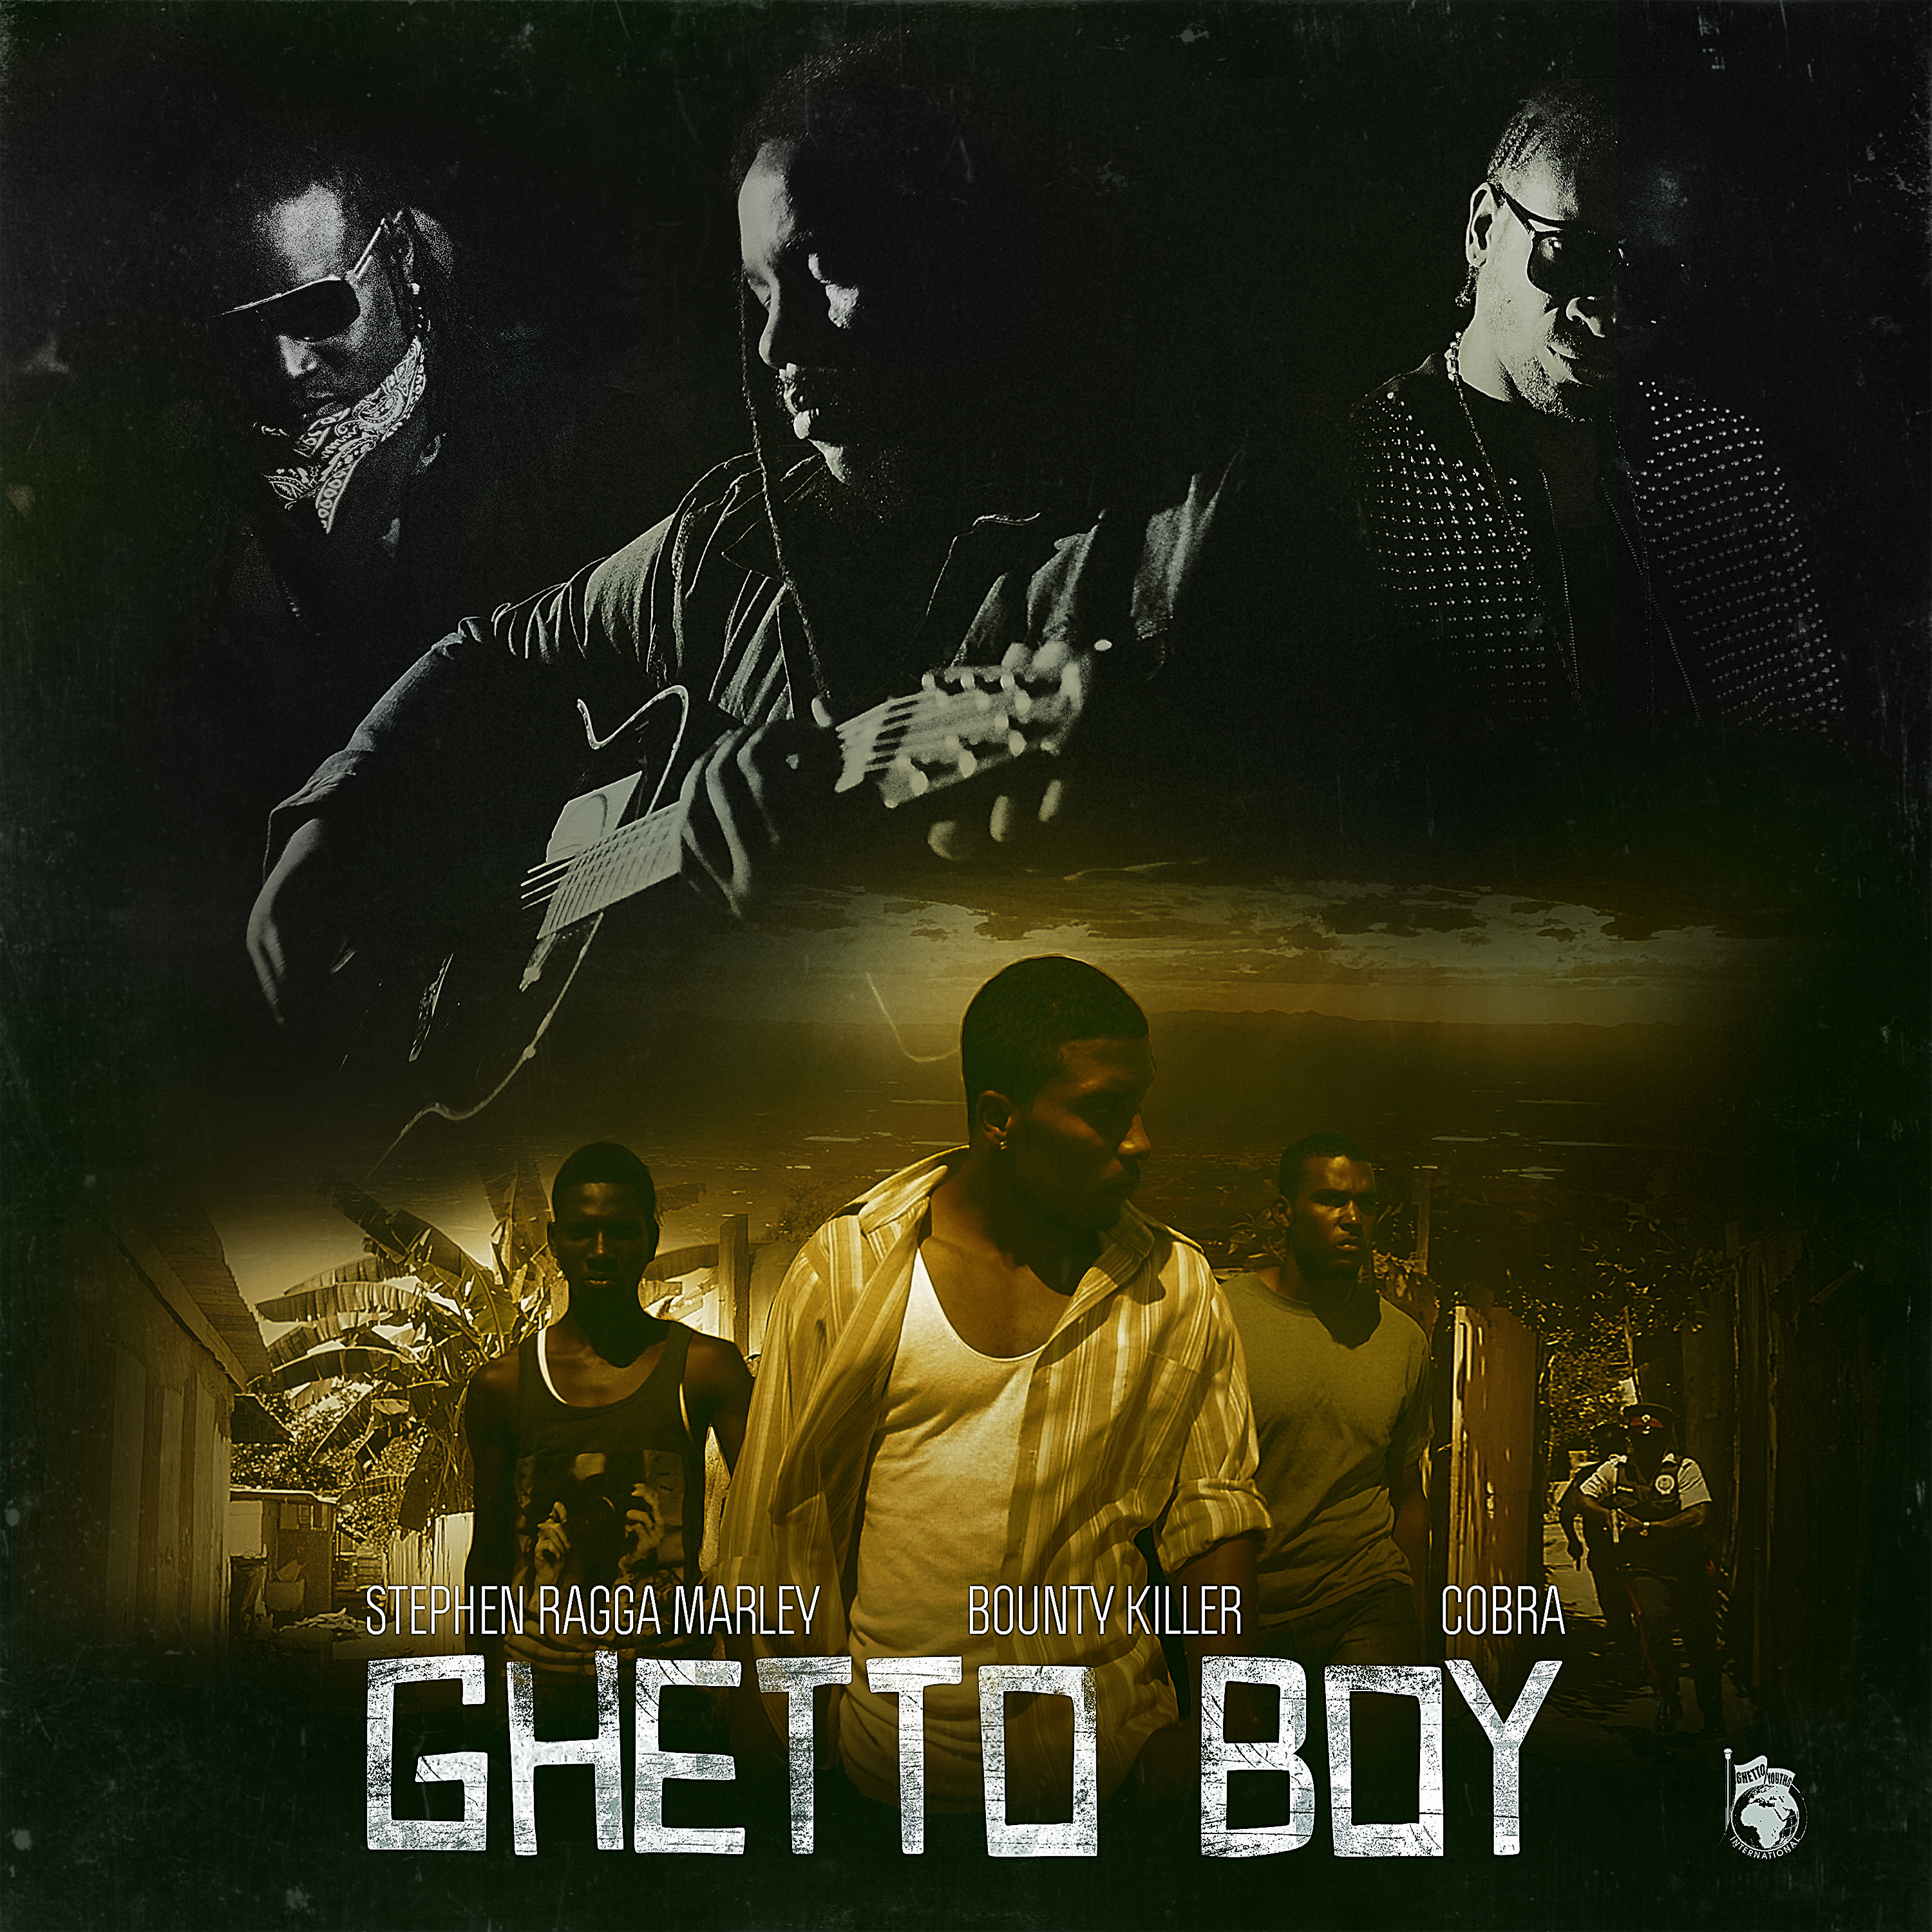 stephen 'ragga' marley, ghetto boy, bounty killer & cobra